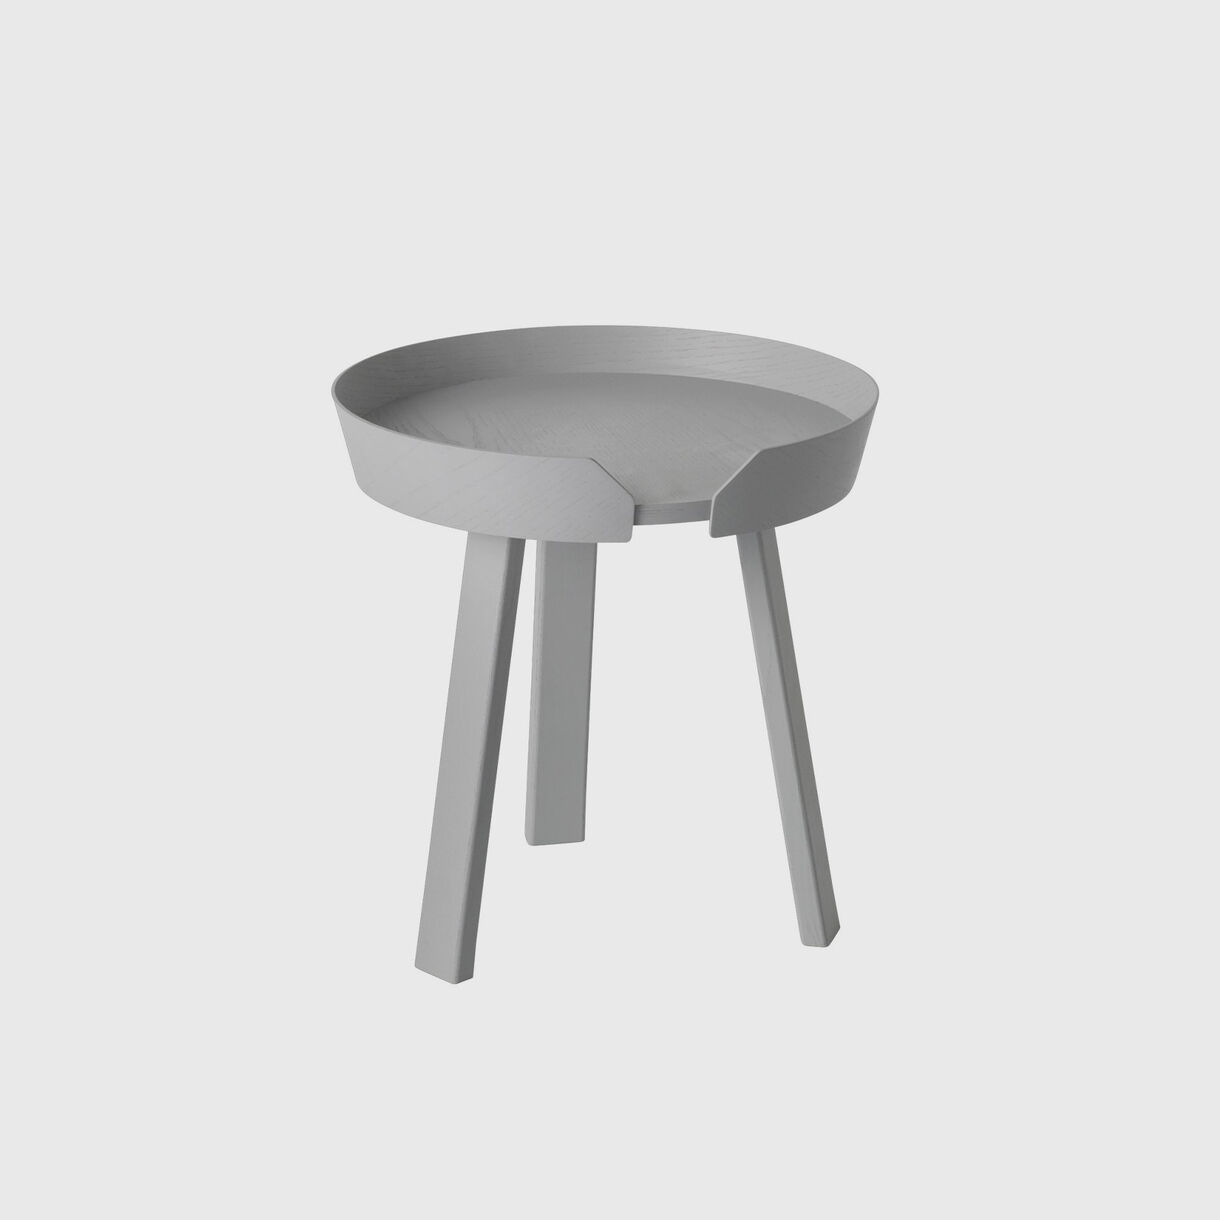 Around Coffee Table Small, Grey